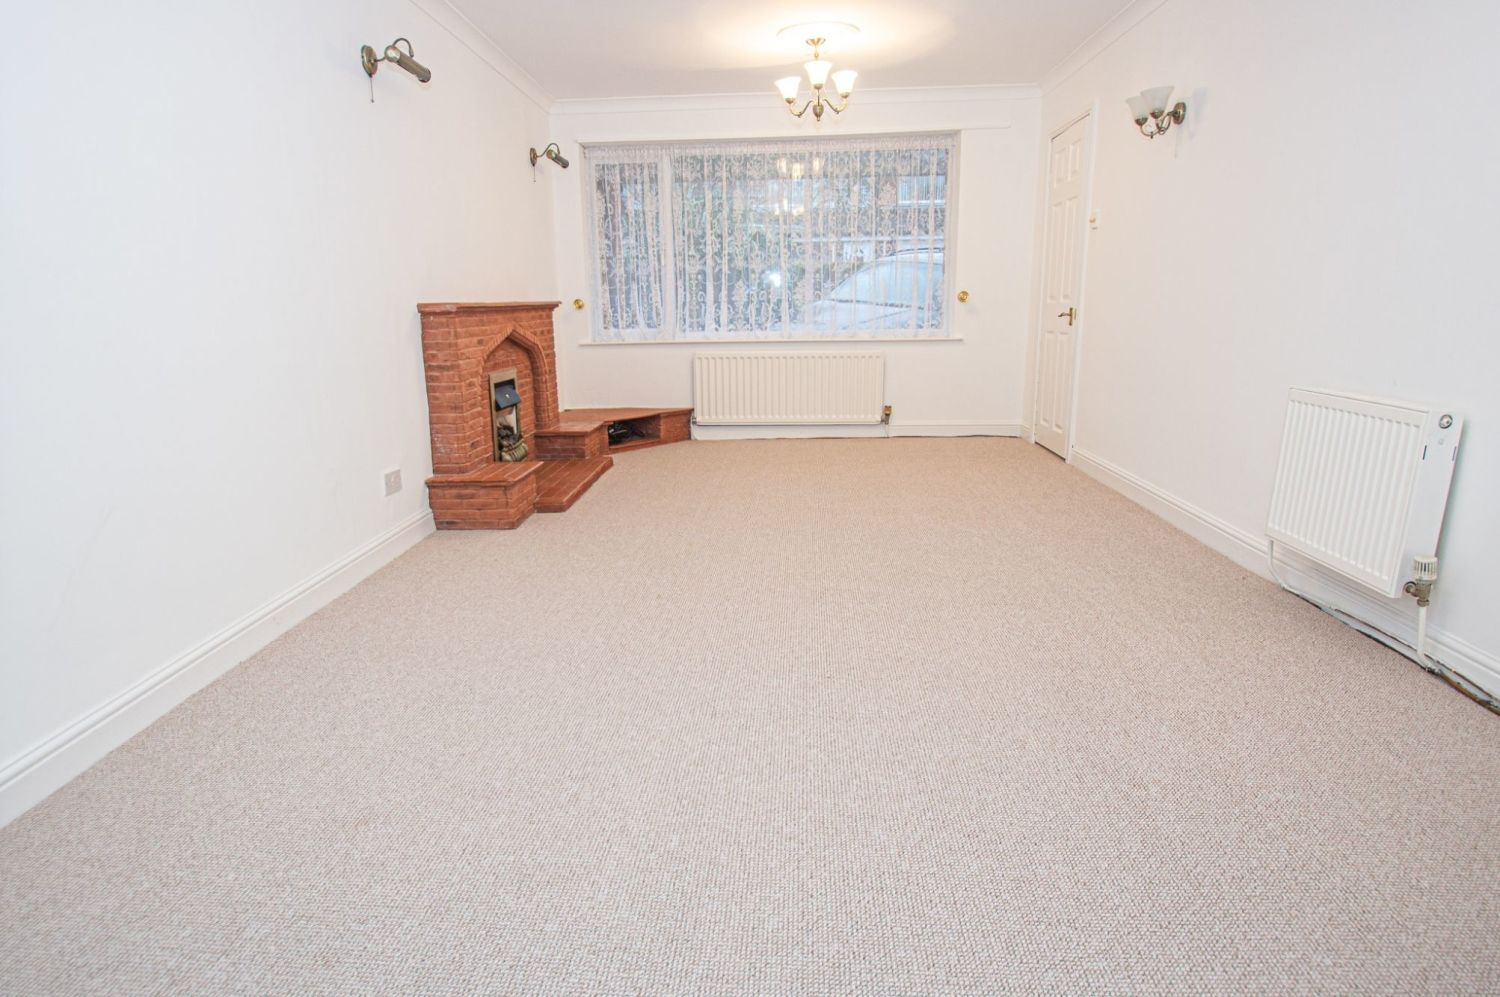 3 bed semi-detached for sale in Cheswick Close, Winyates Green  - Property Image 3